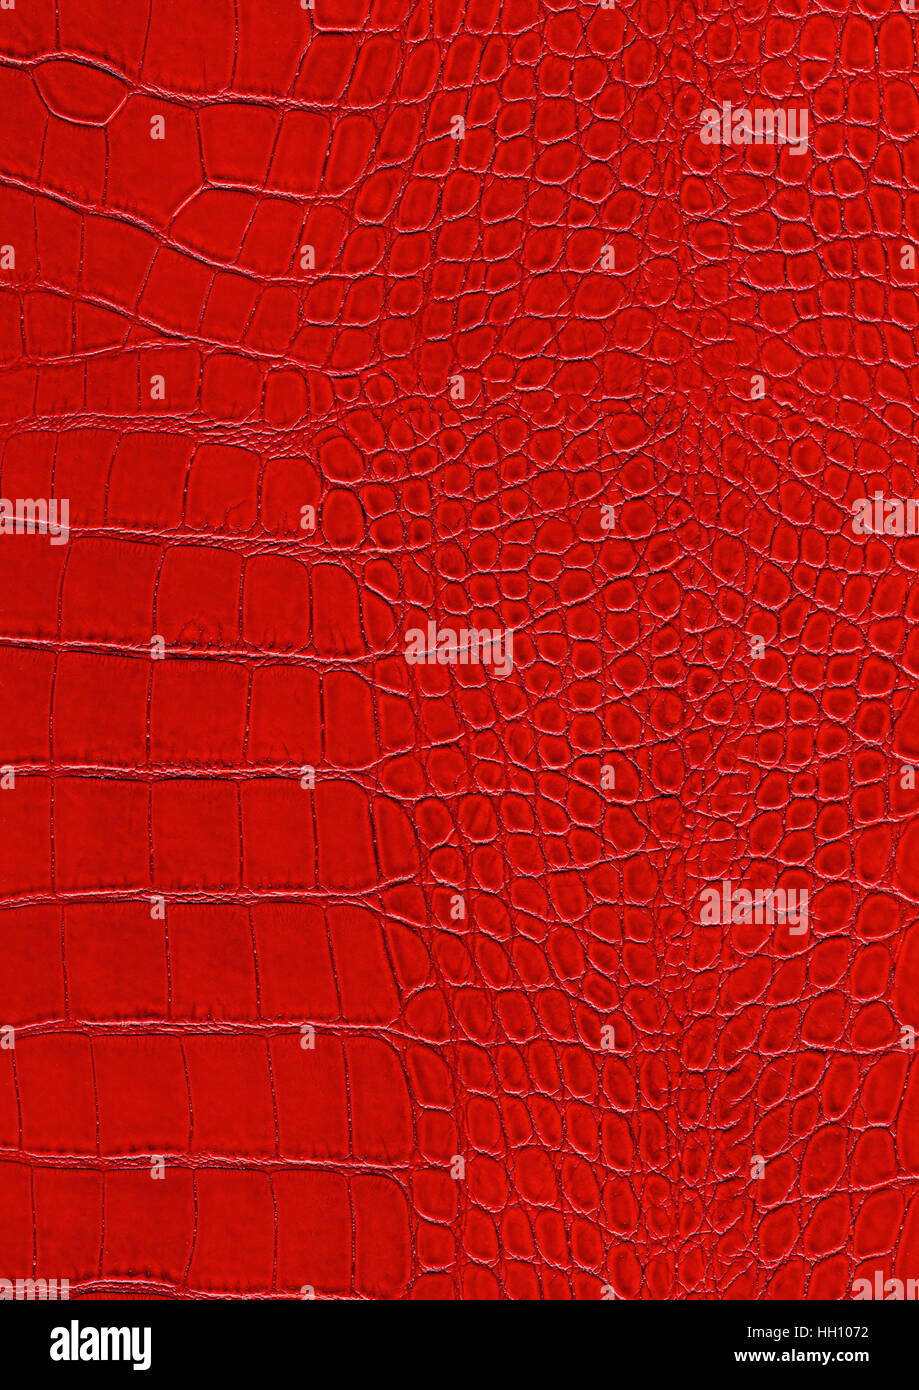 full frame scaled abstract red reptile skin surface - Stock Image